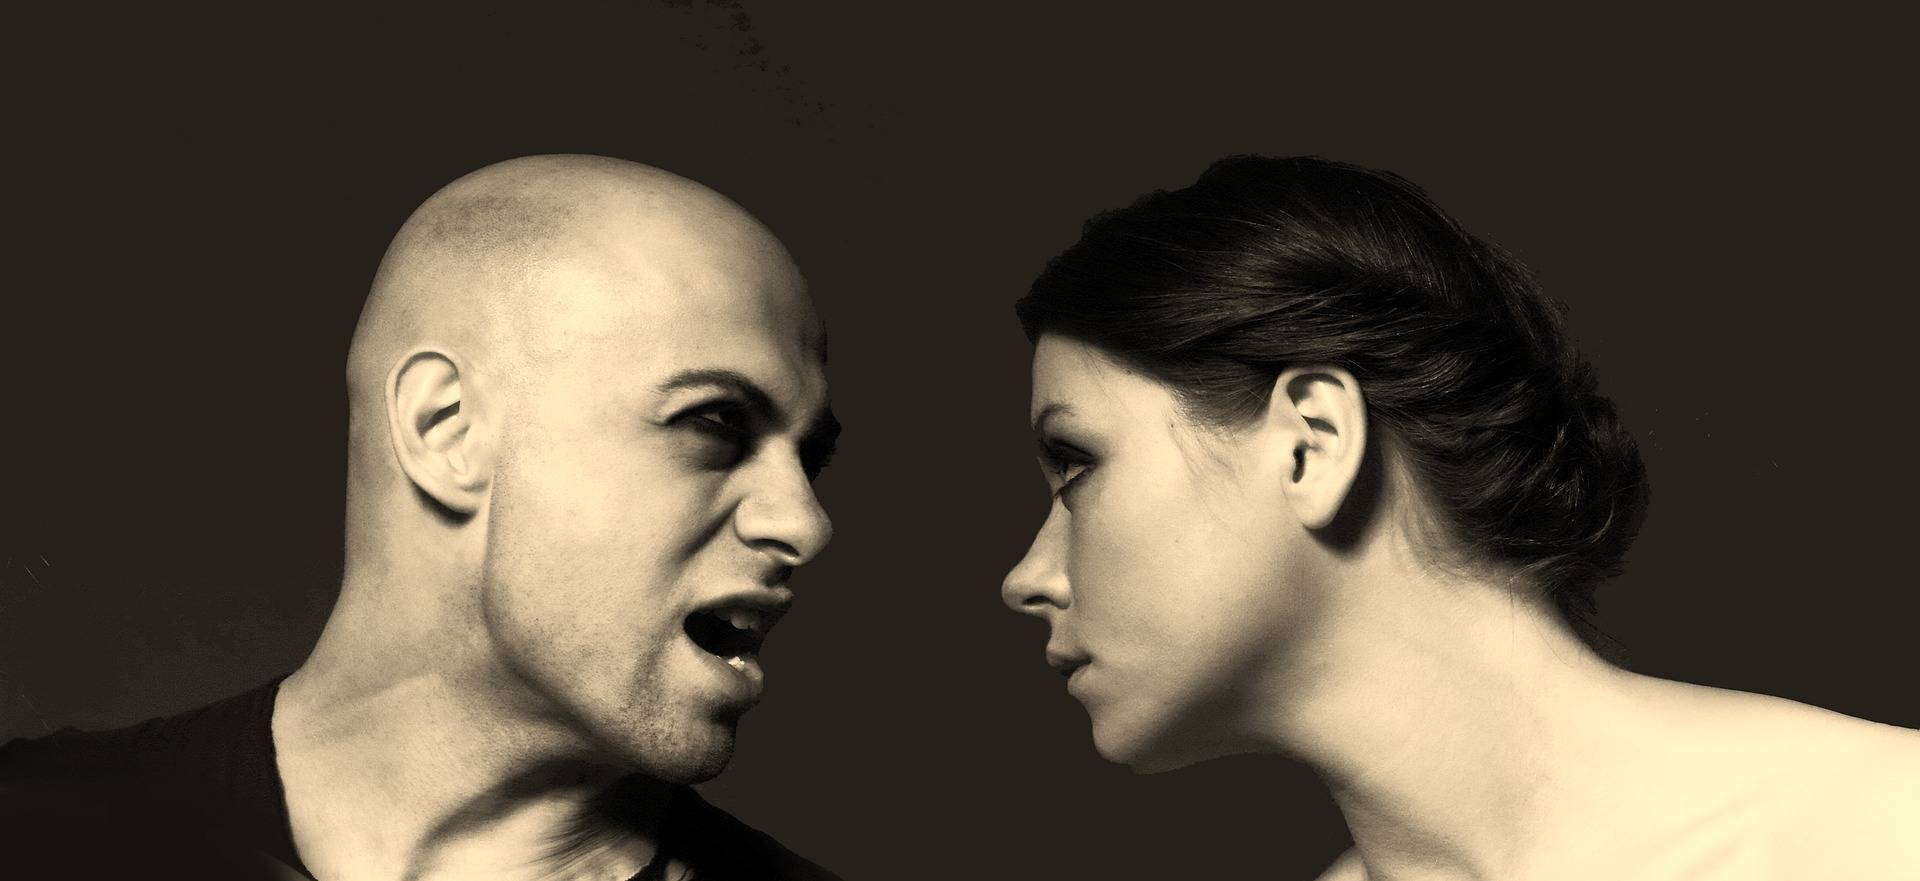 Hard Times in a Relationship: How To Fight